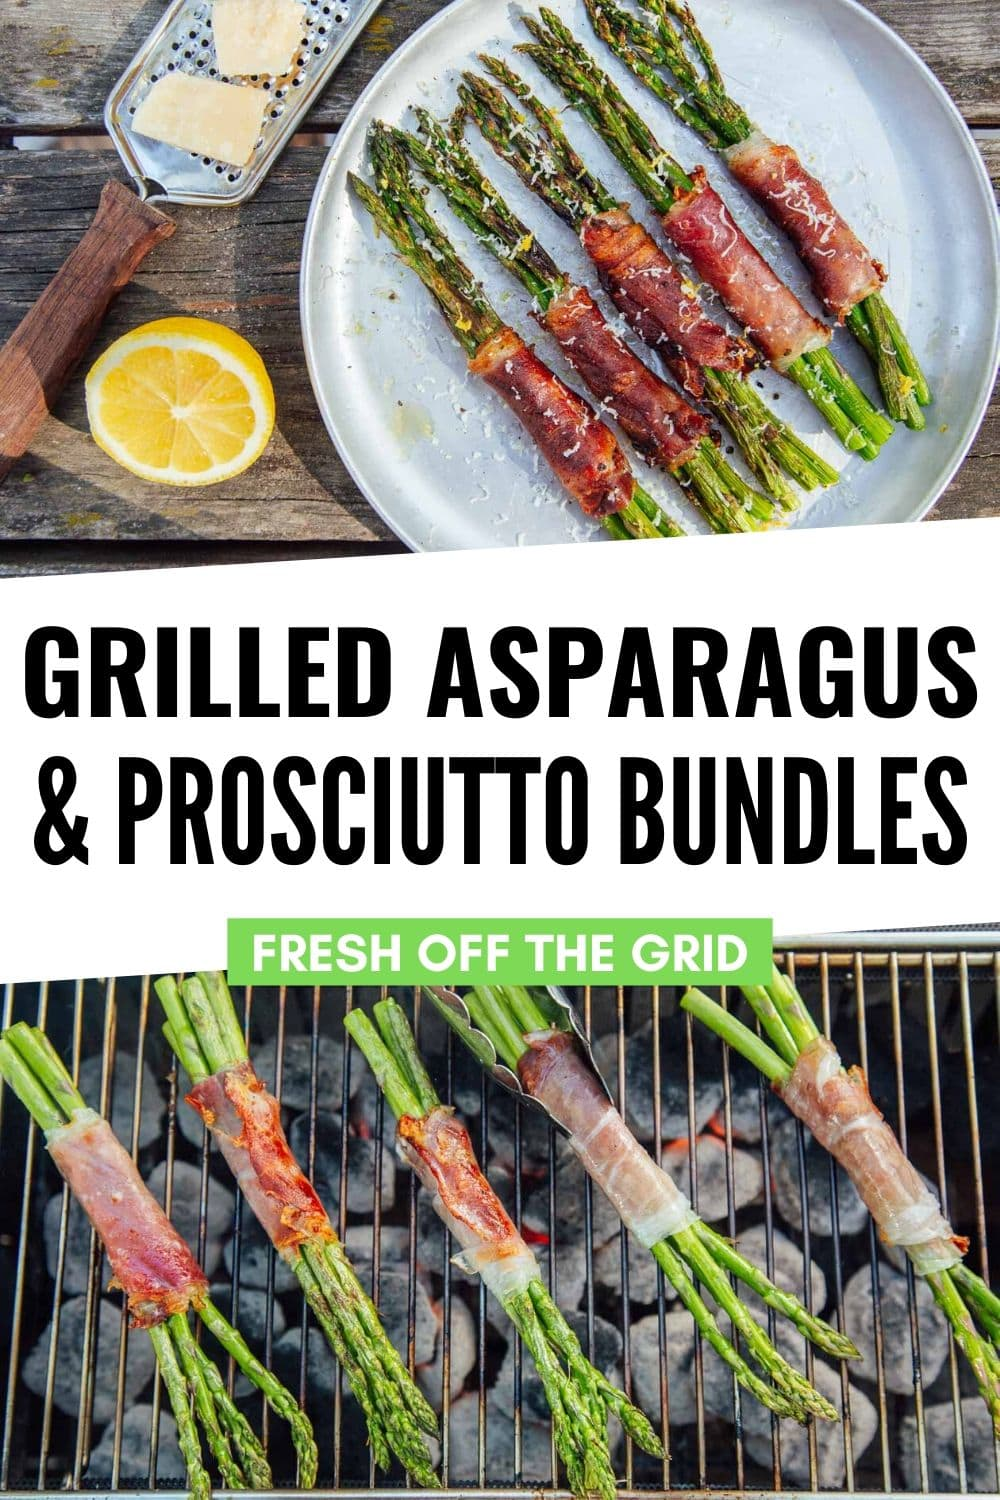 Grilled asparagus wrapped with crispy prosciutto, these quick and easy prosciutto asparagus bundles are a great way to class up your camping happy hour. Easy camping food | Summer grilling via @freshoffthegrid